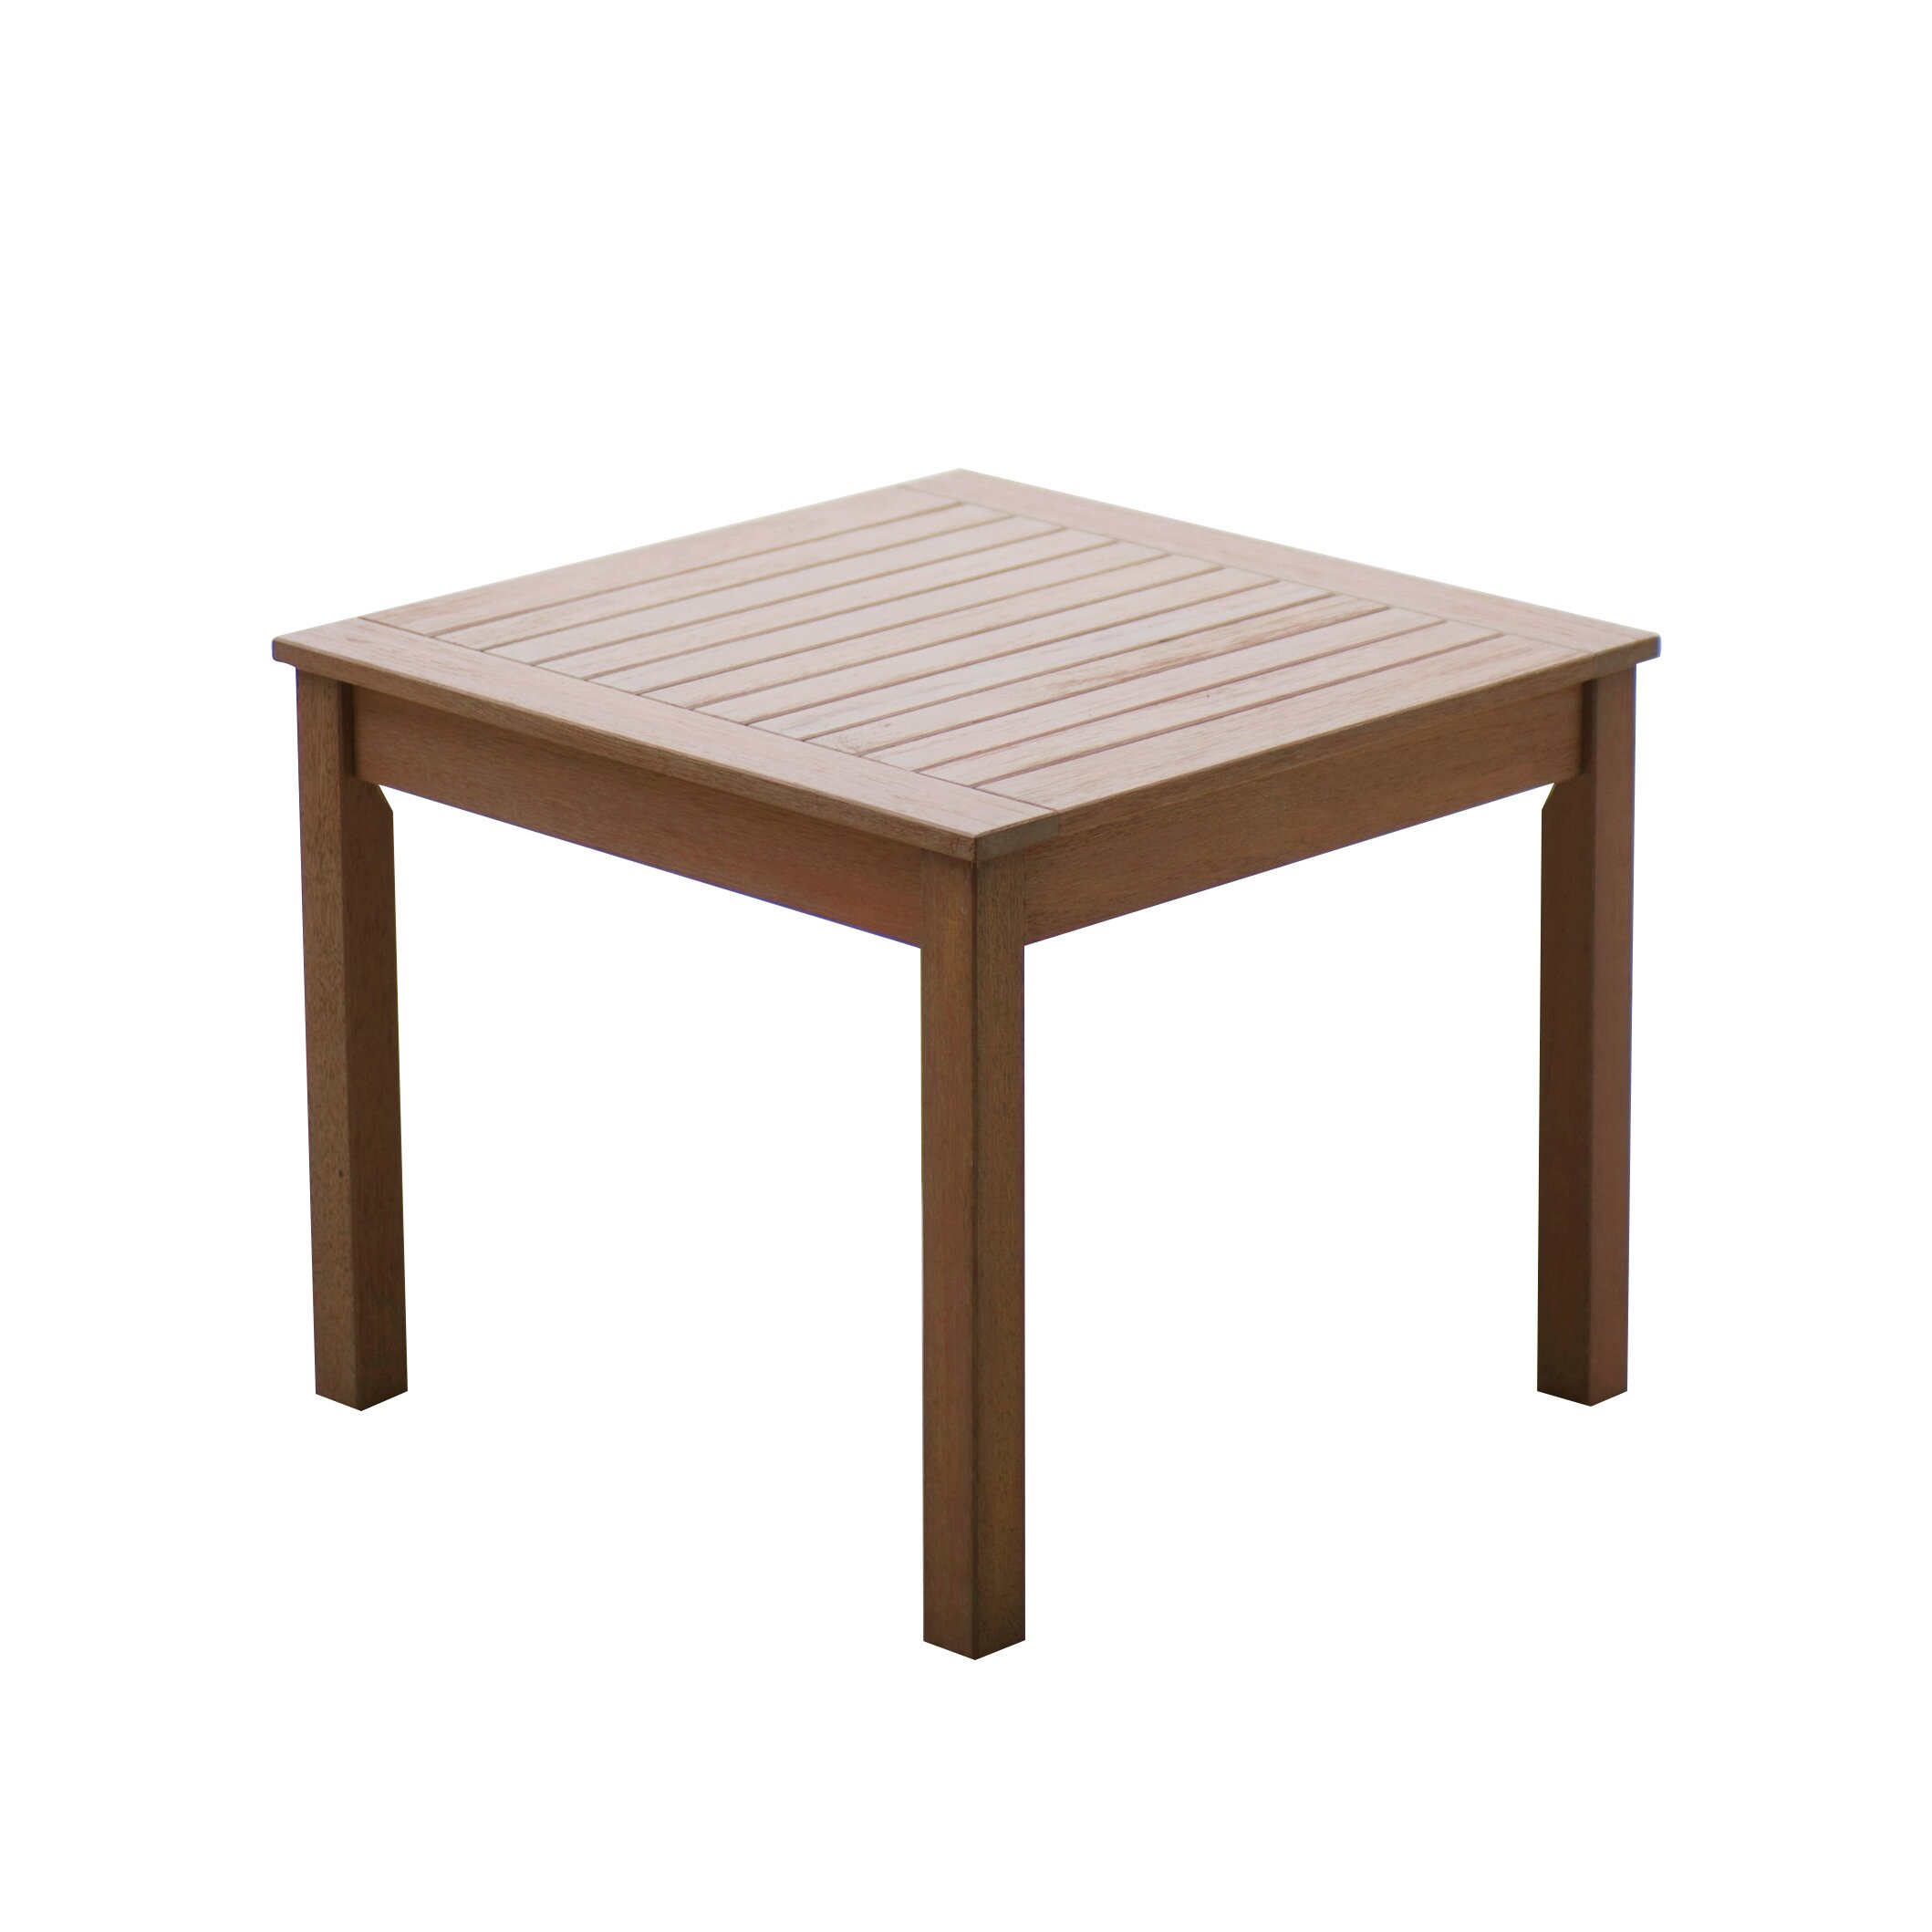 Casual Coffee Tables Casual Elements Mah001 M1f Lodge Coffee Table Atg Stores Coaster